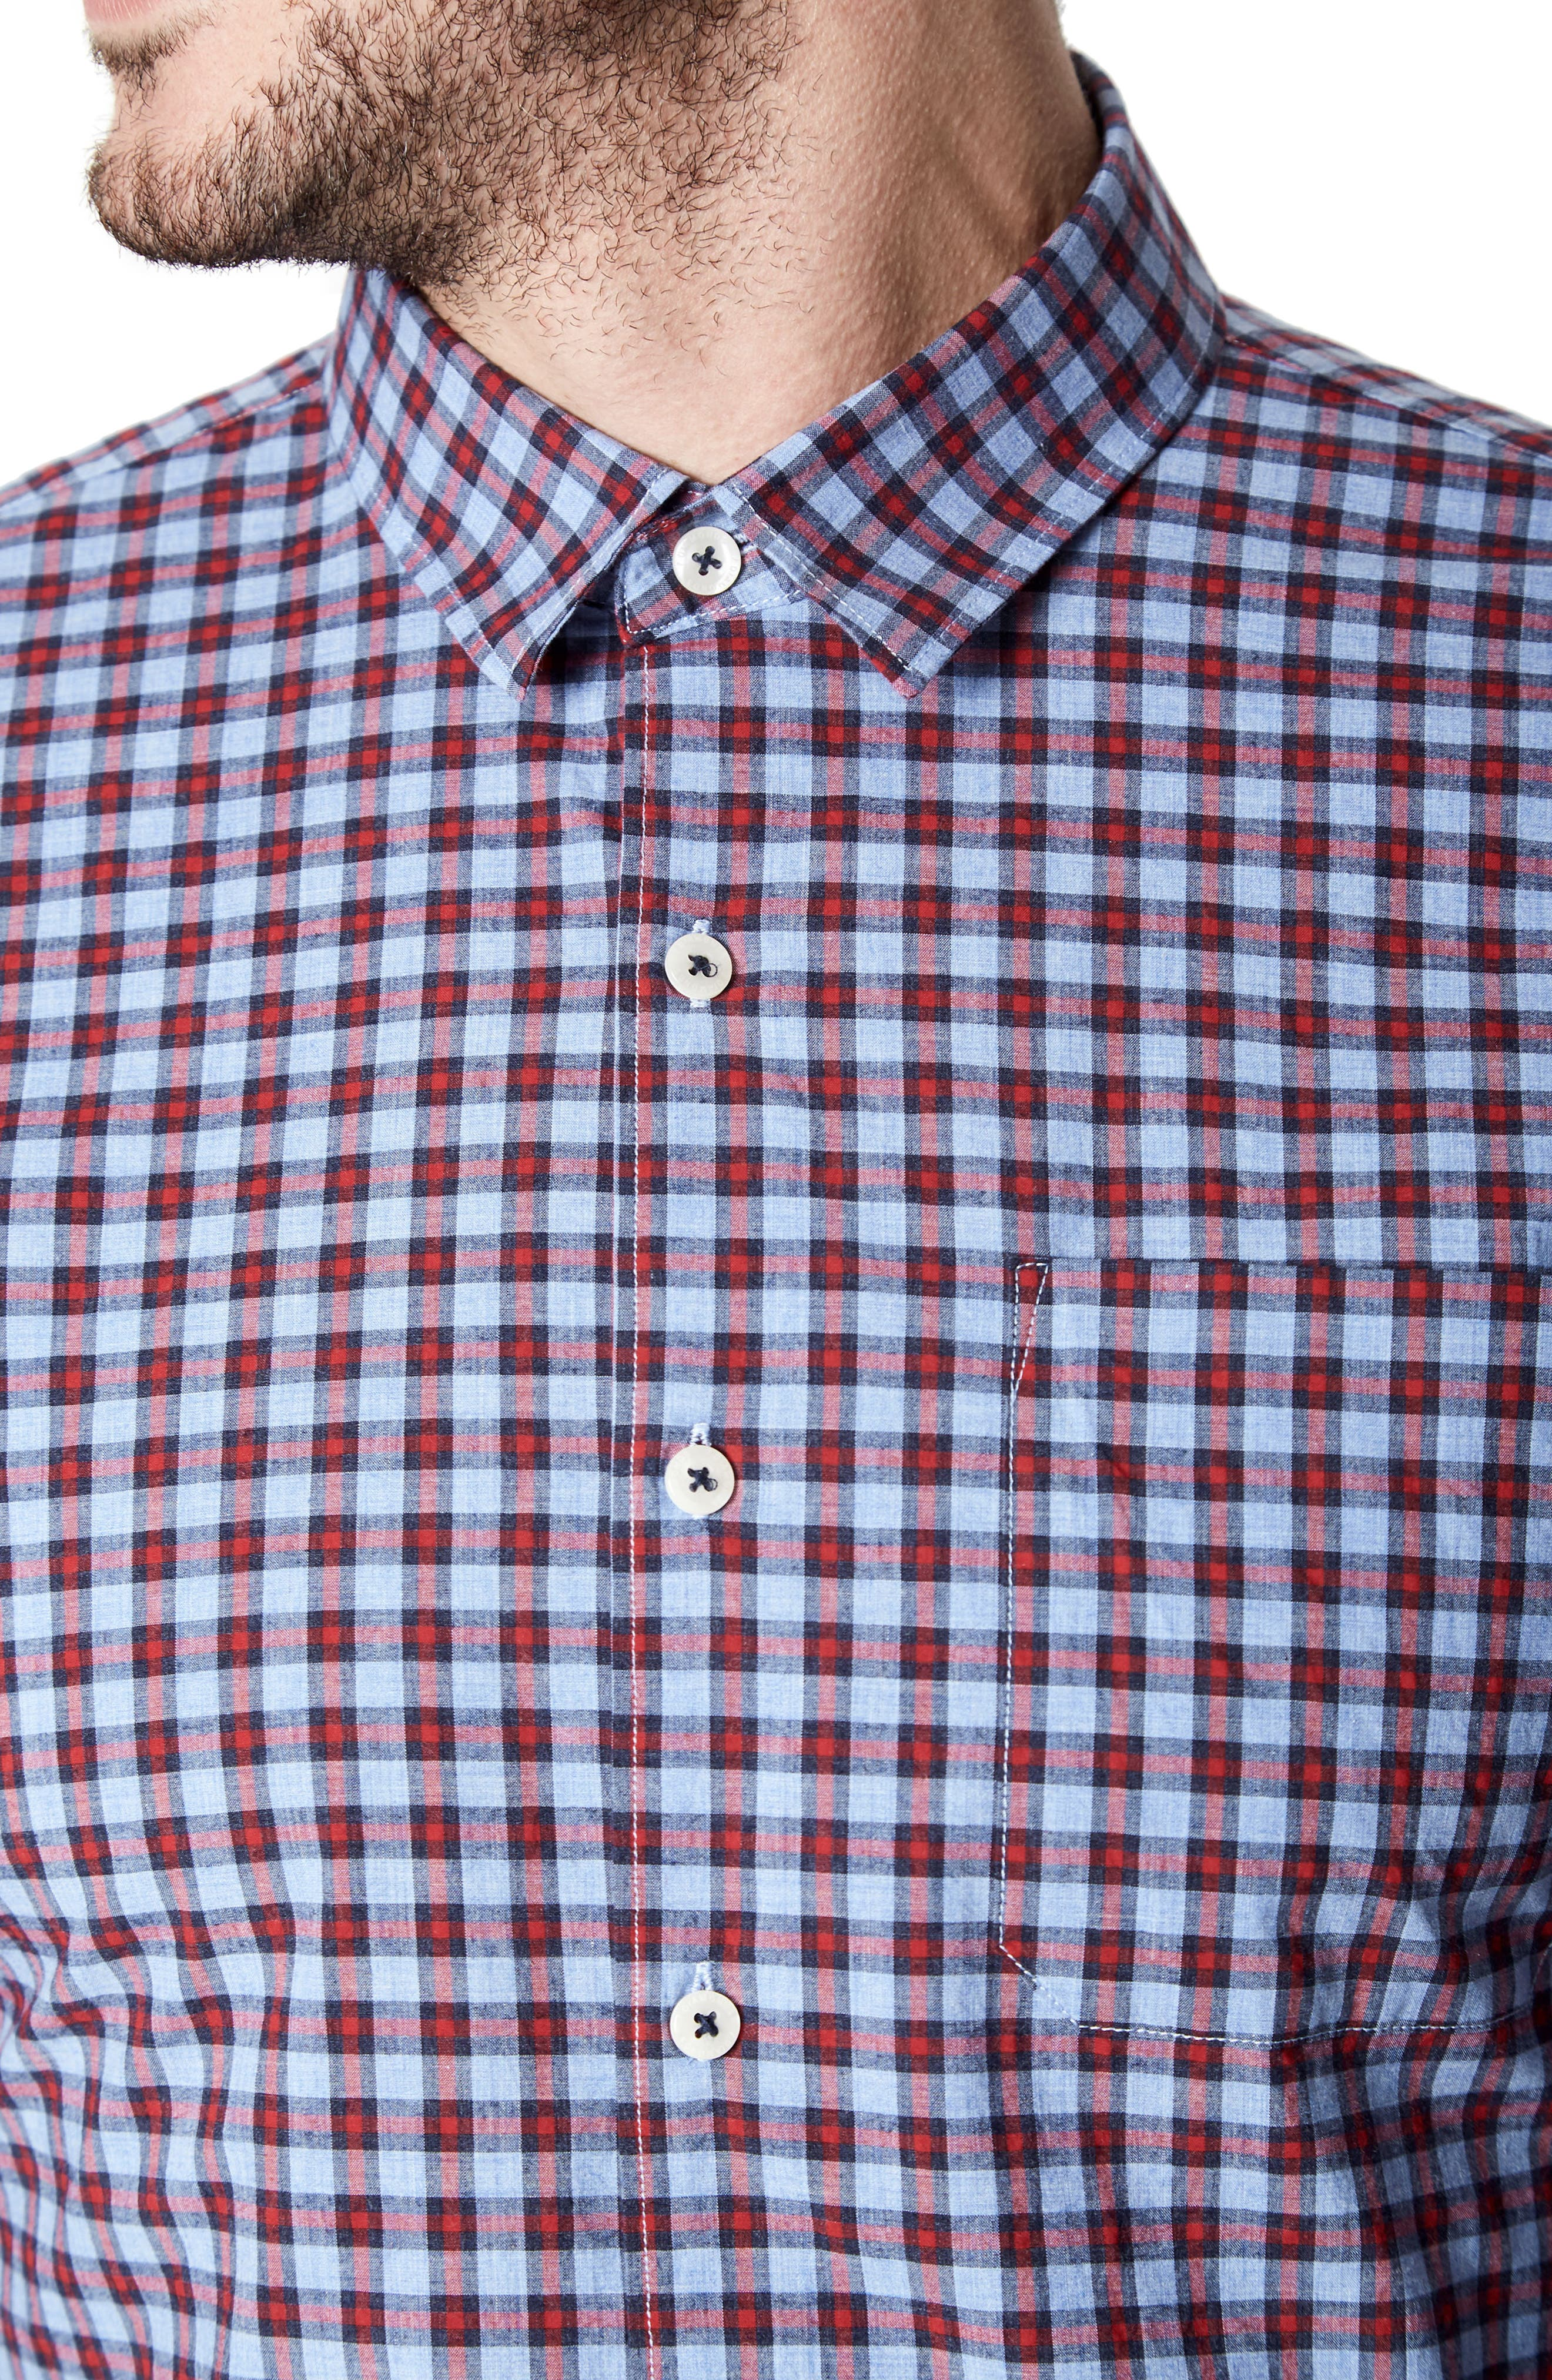 Red Moon Woven Shirt,                             Alternate thumbnail 4, color,                             600